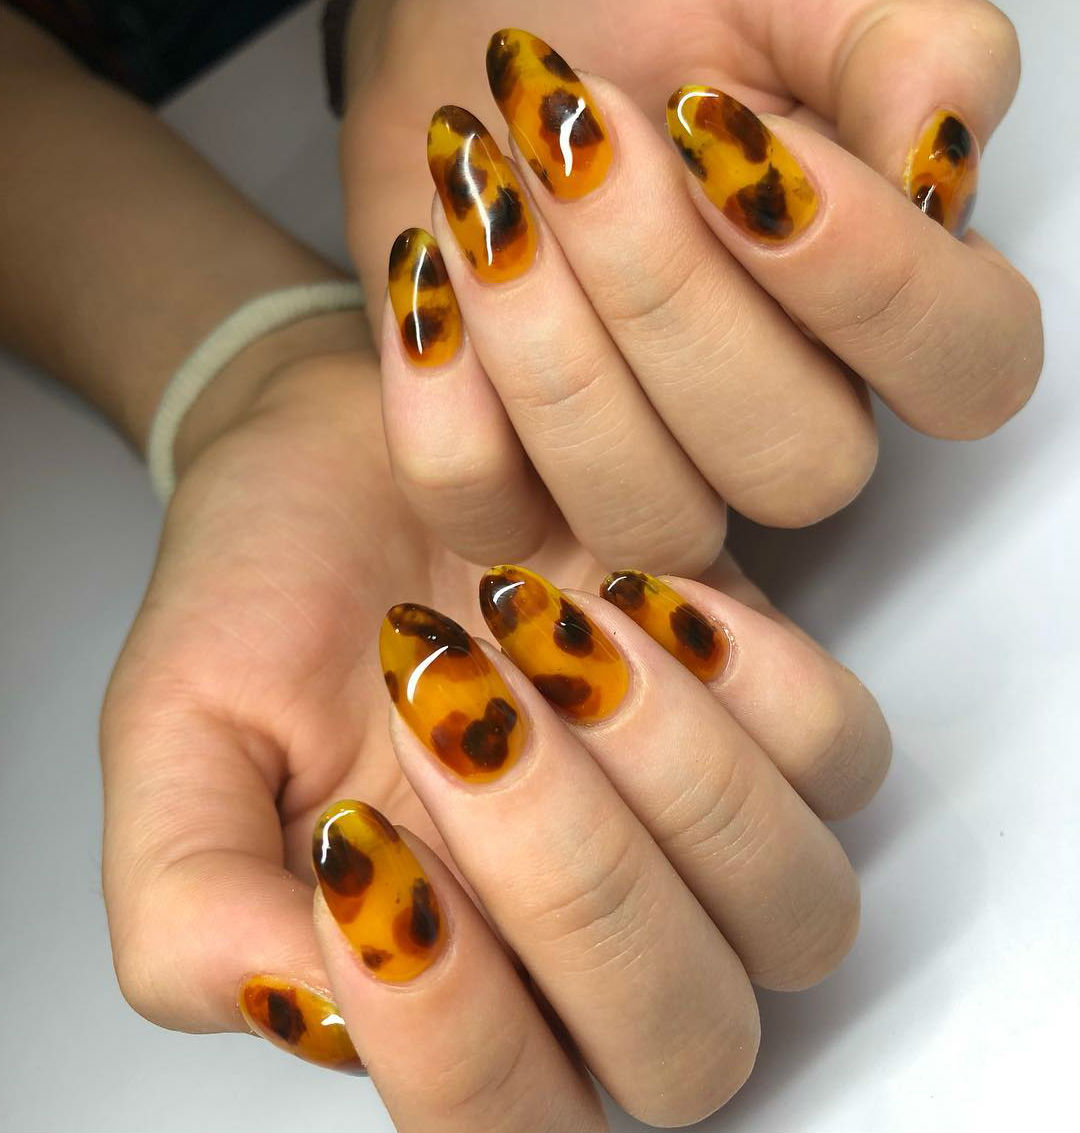 Trended back in 2013 | Tortoiseshell Nails are Autumn's Coolest Manicure Trend | Her Beauty